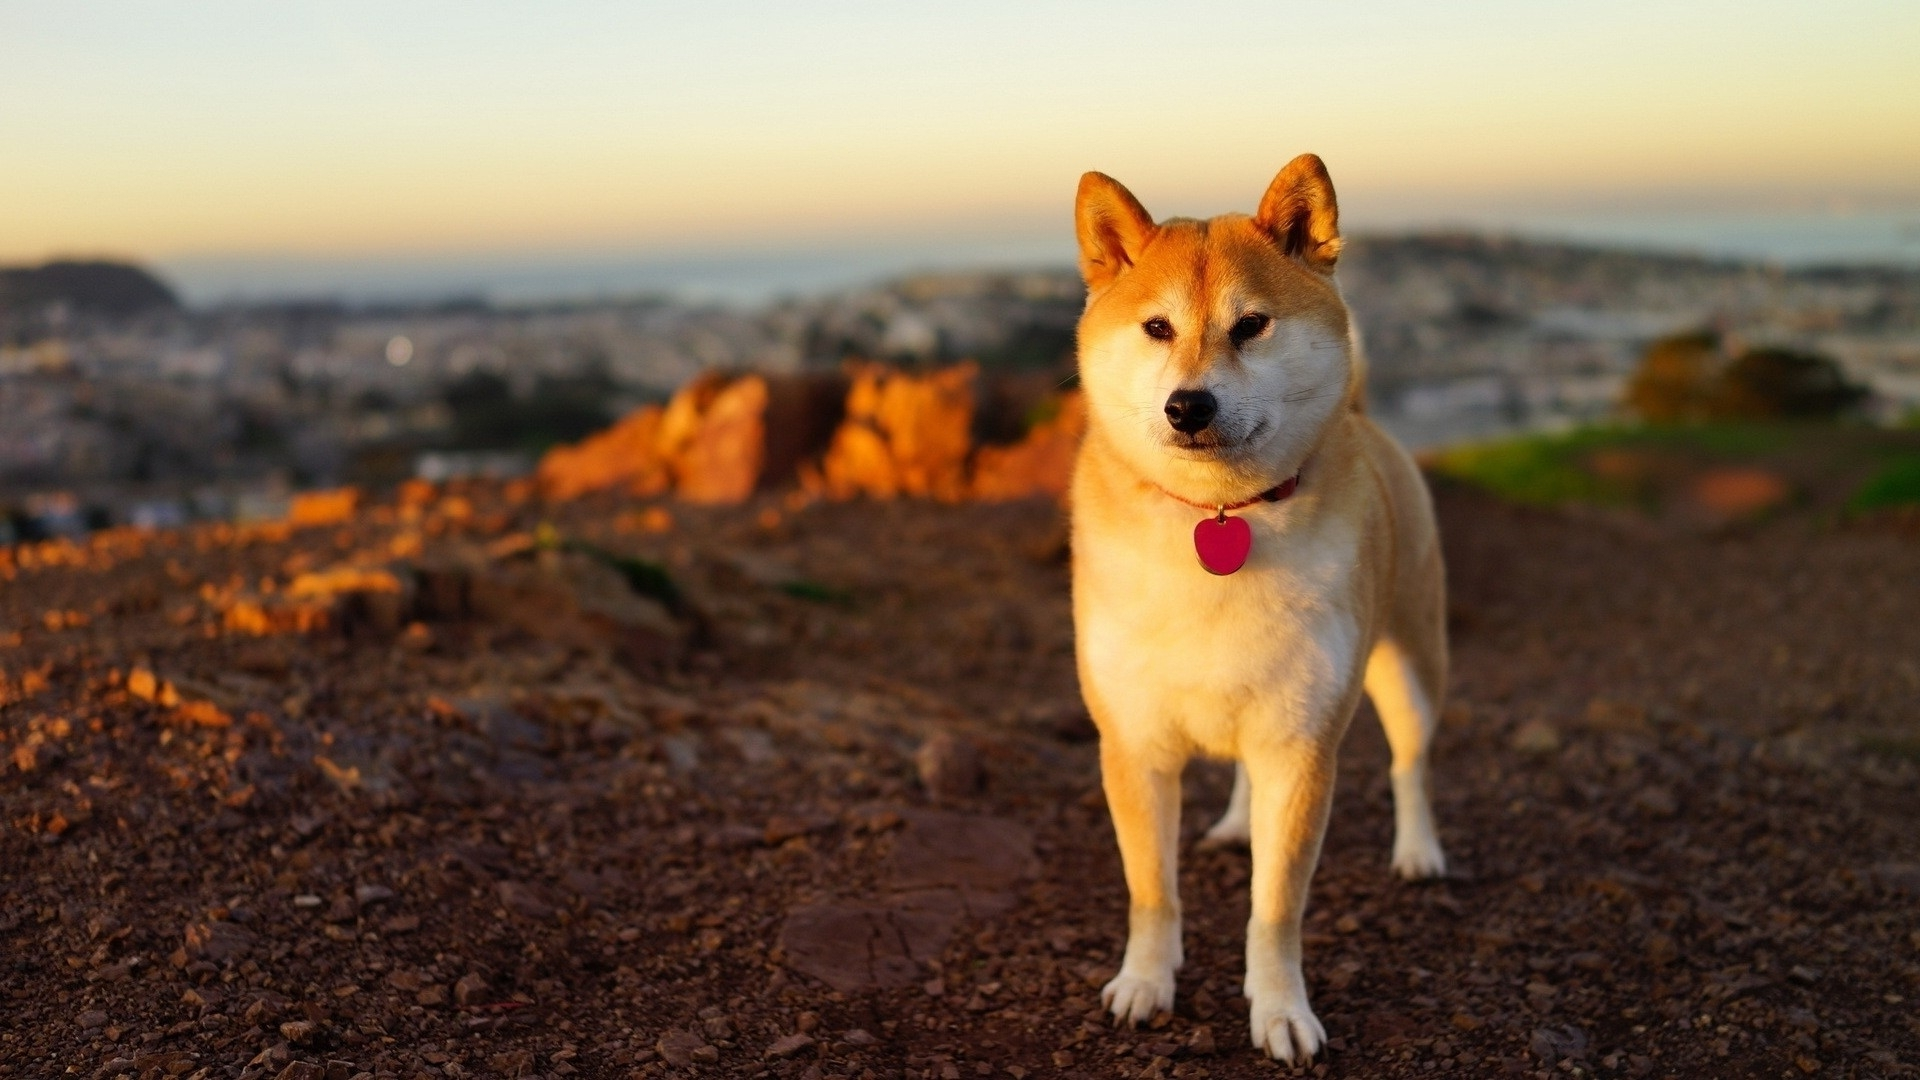 anime dog shiba inu wallpapers hd / desktop and mobile backgrounds